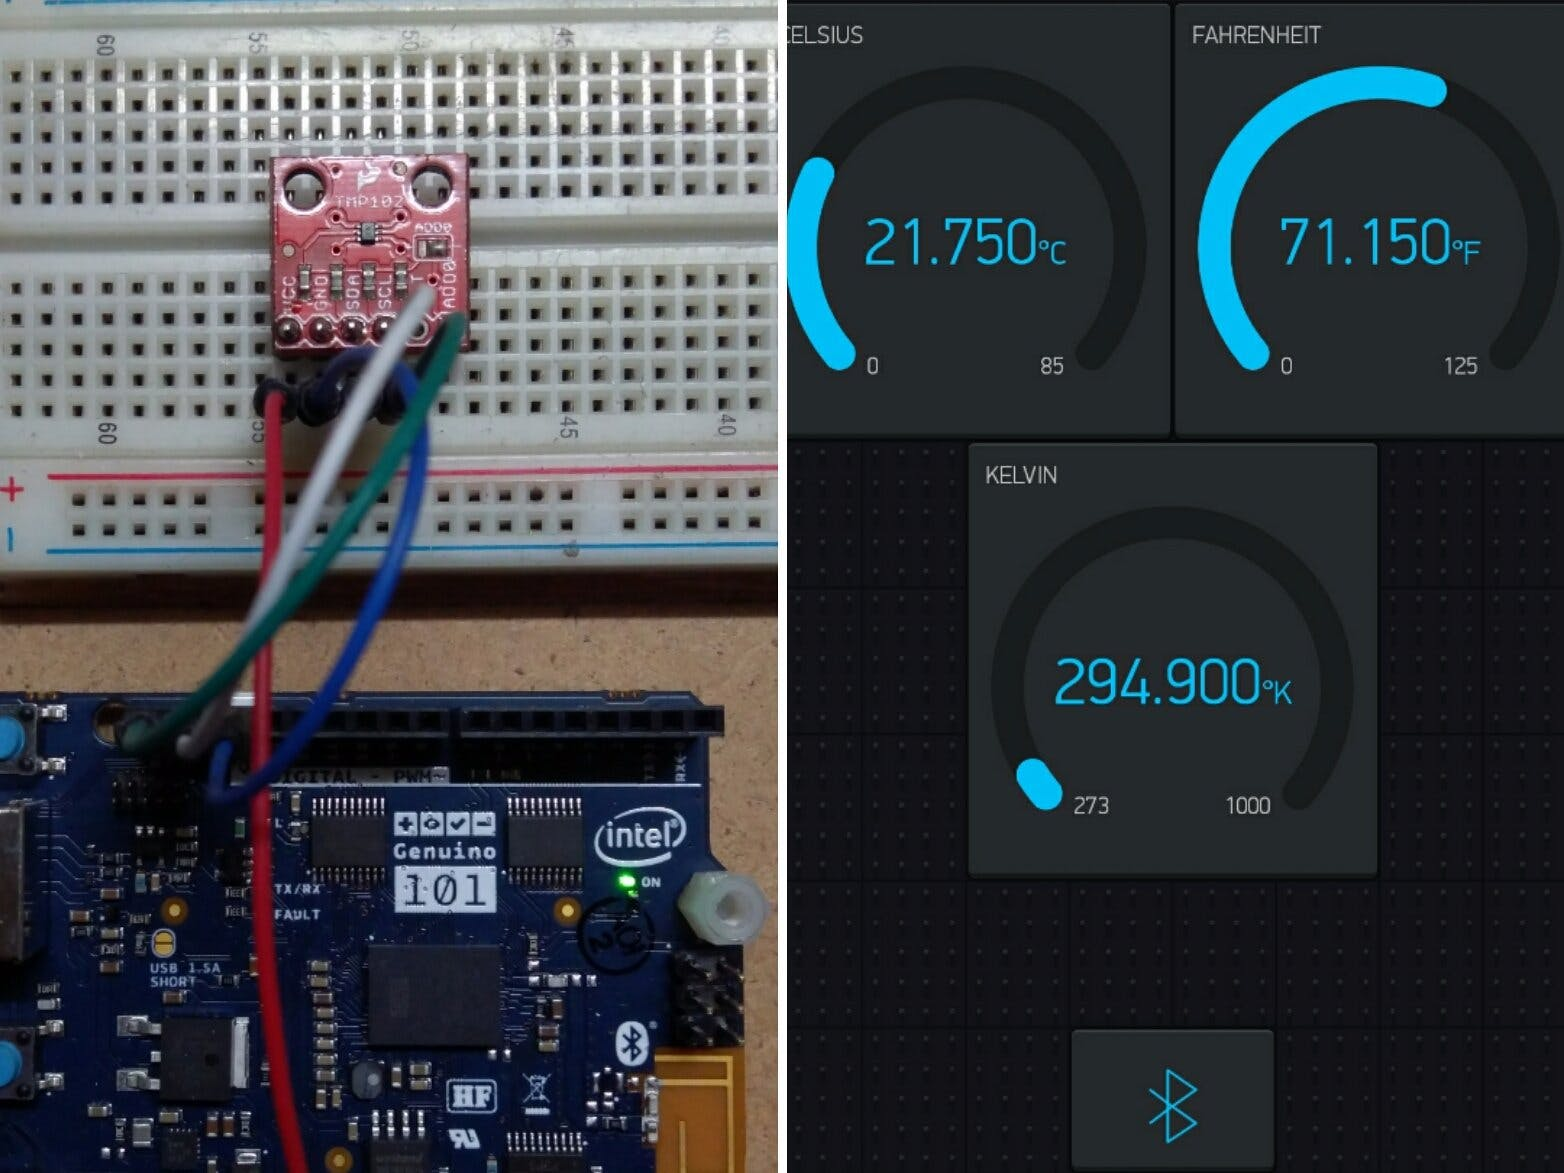 Arduino/Genuino 101 BLE Thermometer With TMP102 and Blynk